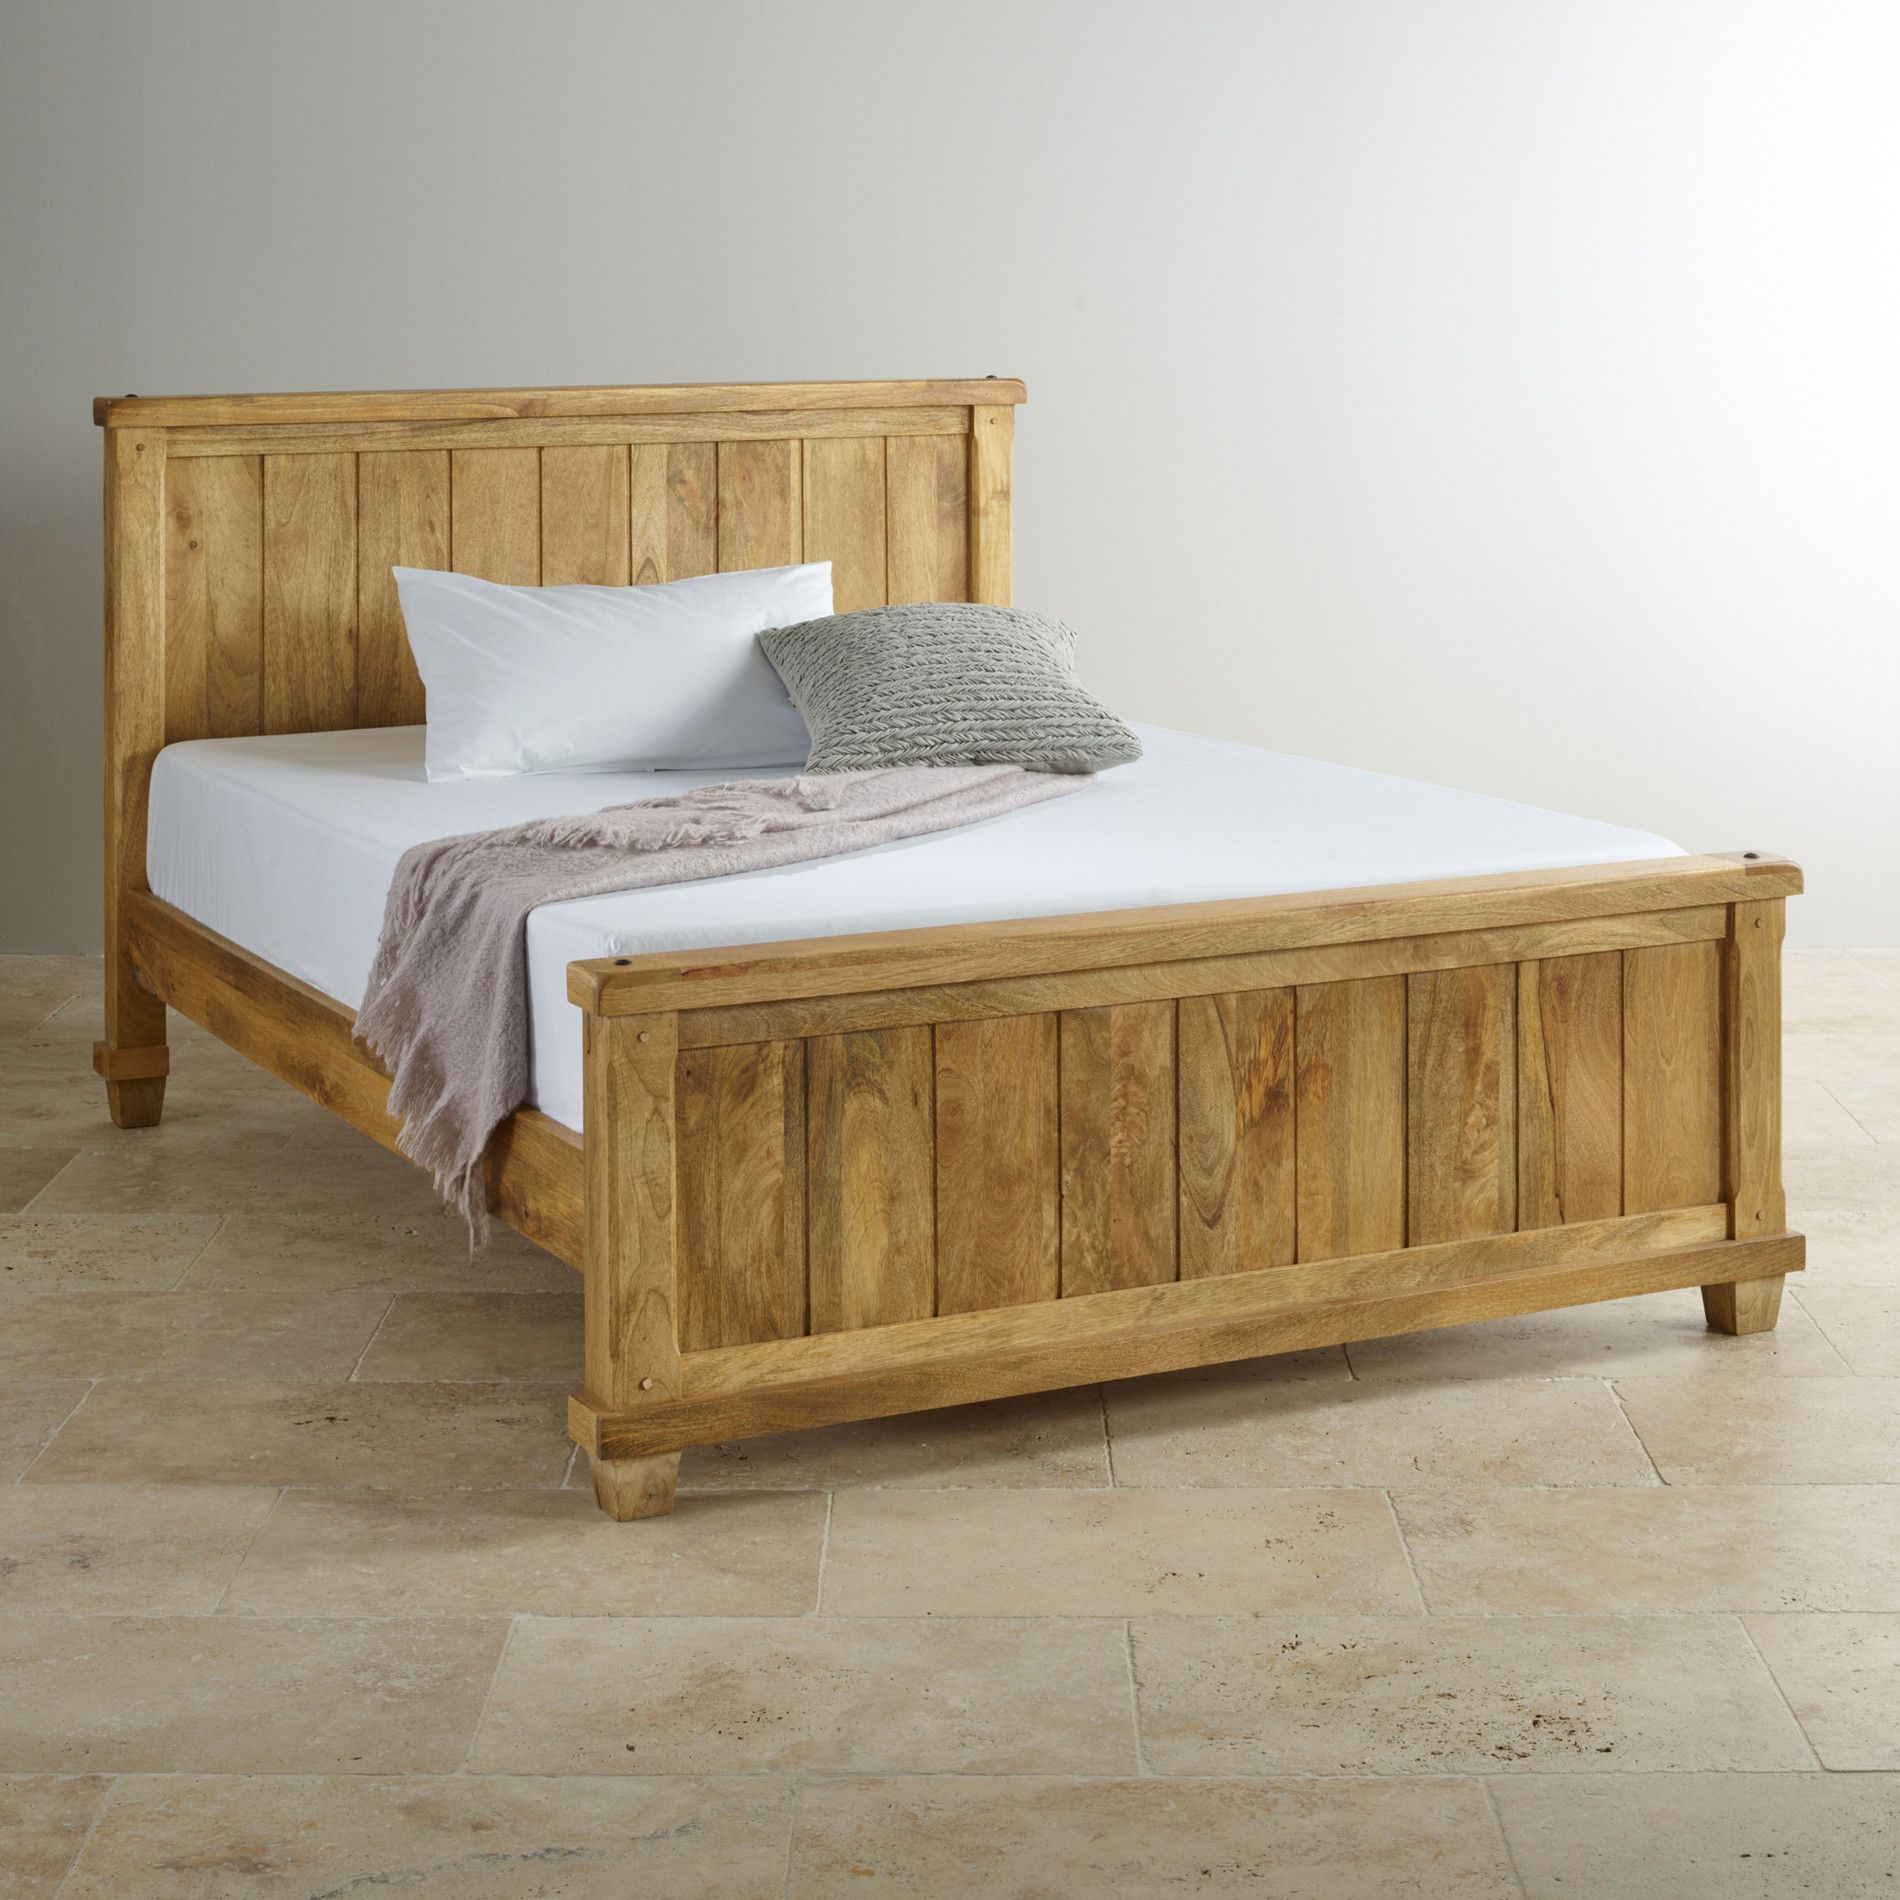 Oak Furniture Land Beds Baku Light Mango King Size Bed From The Baku Light Solid Mango